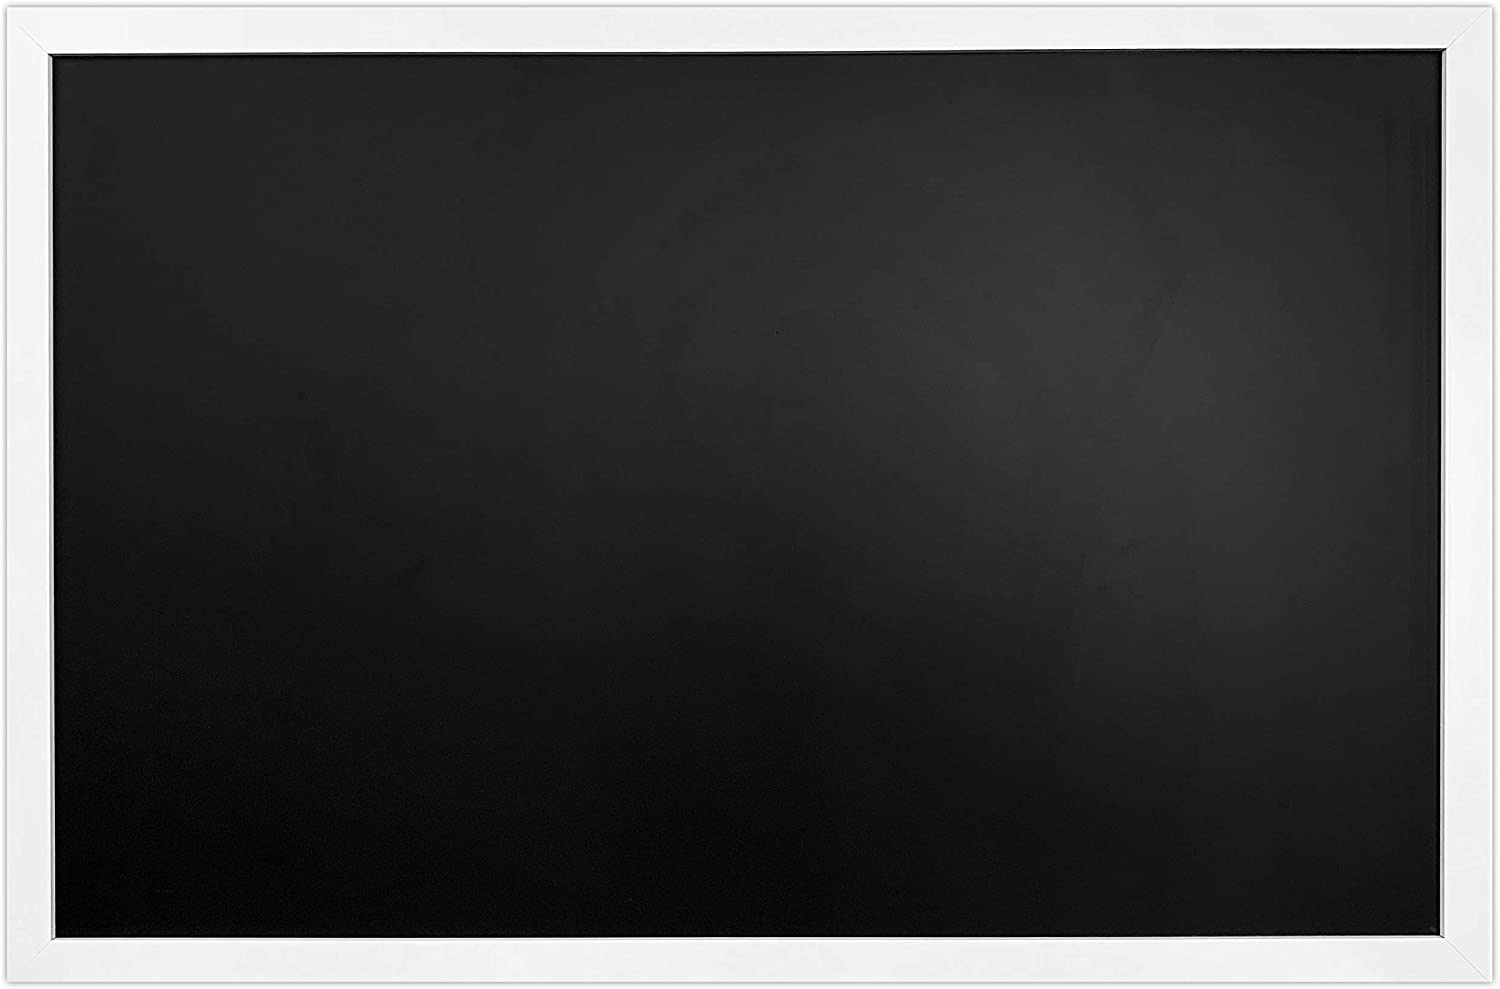 """White Framed Premium Surface Magnetic Large Chalk Board- 24""""x36"""" by Loddie Doddie. Perfect for Chalk Markers and Home Decor"""